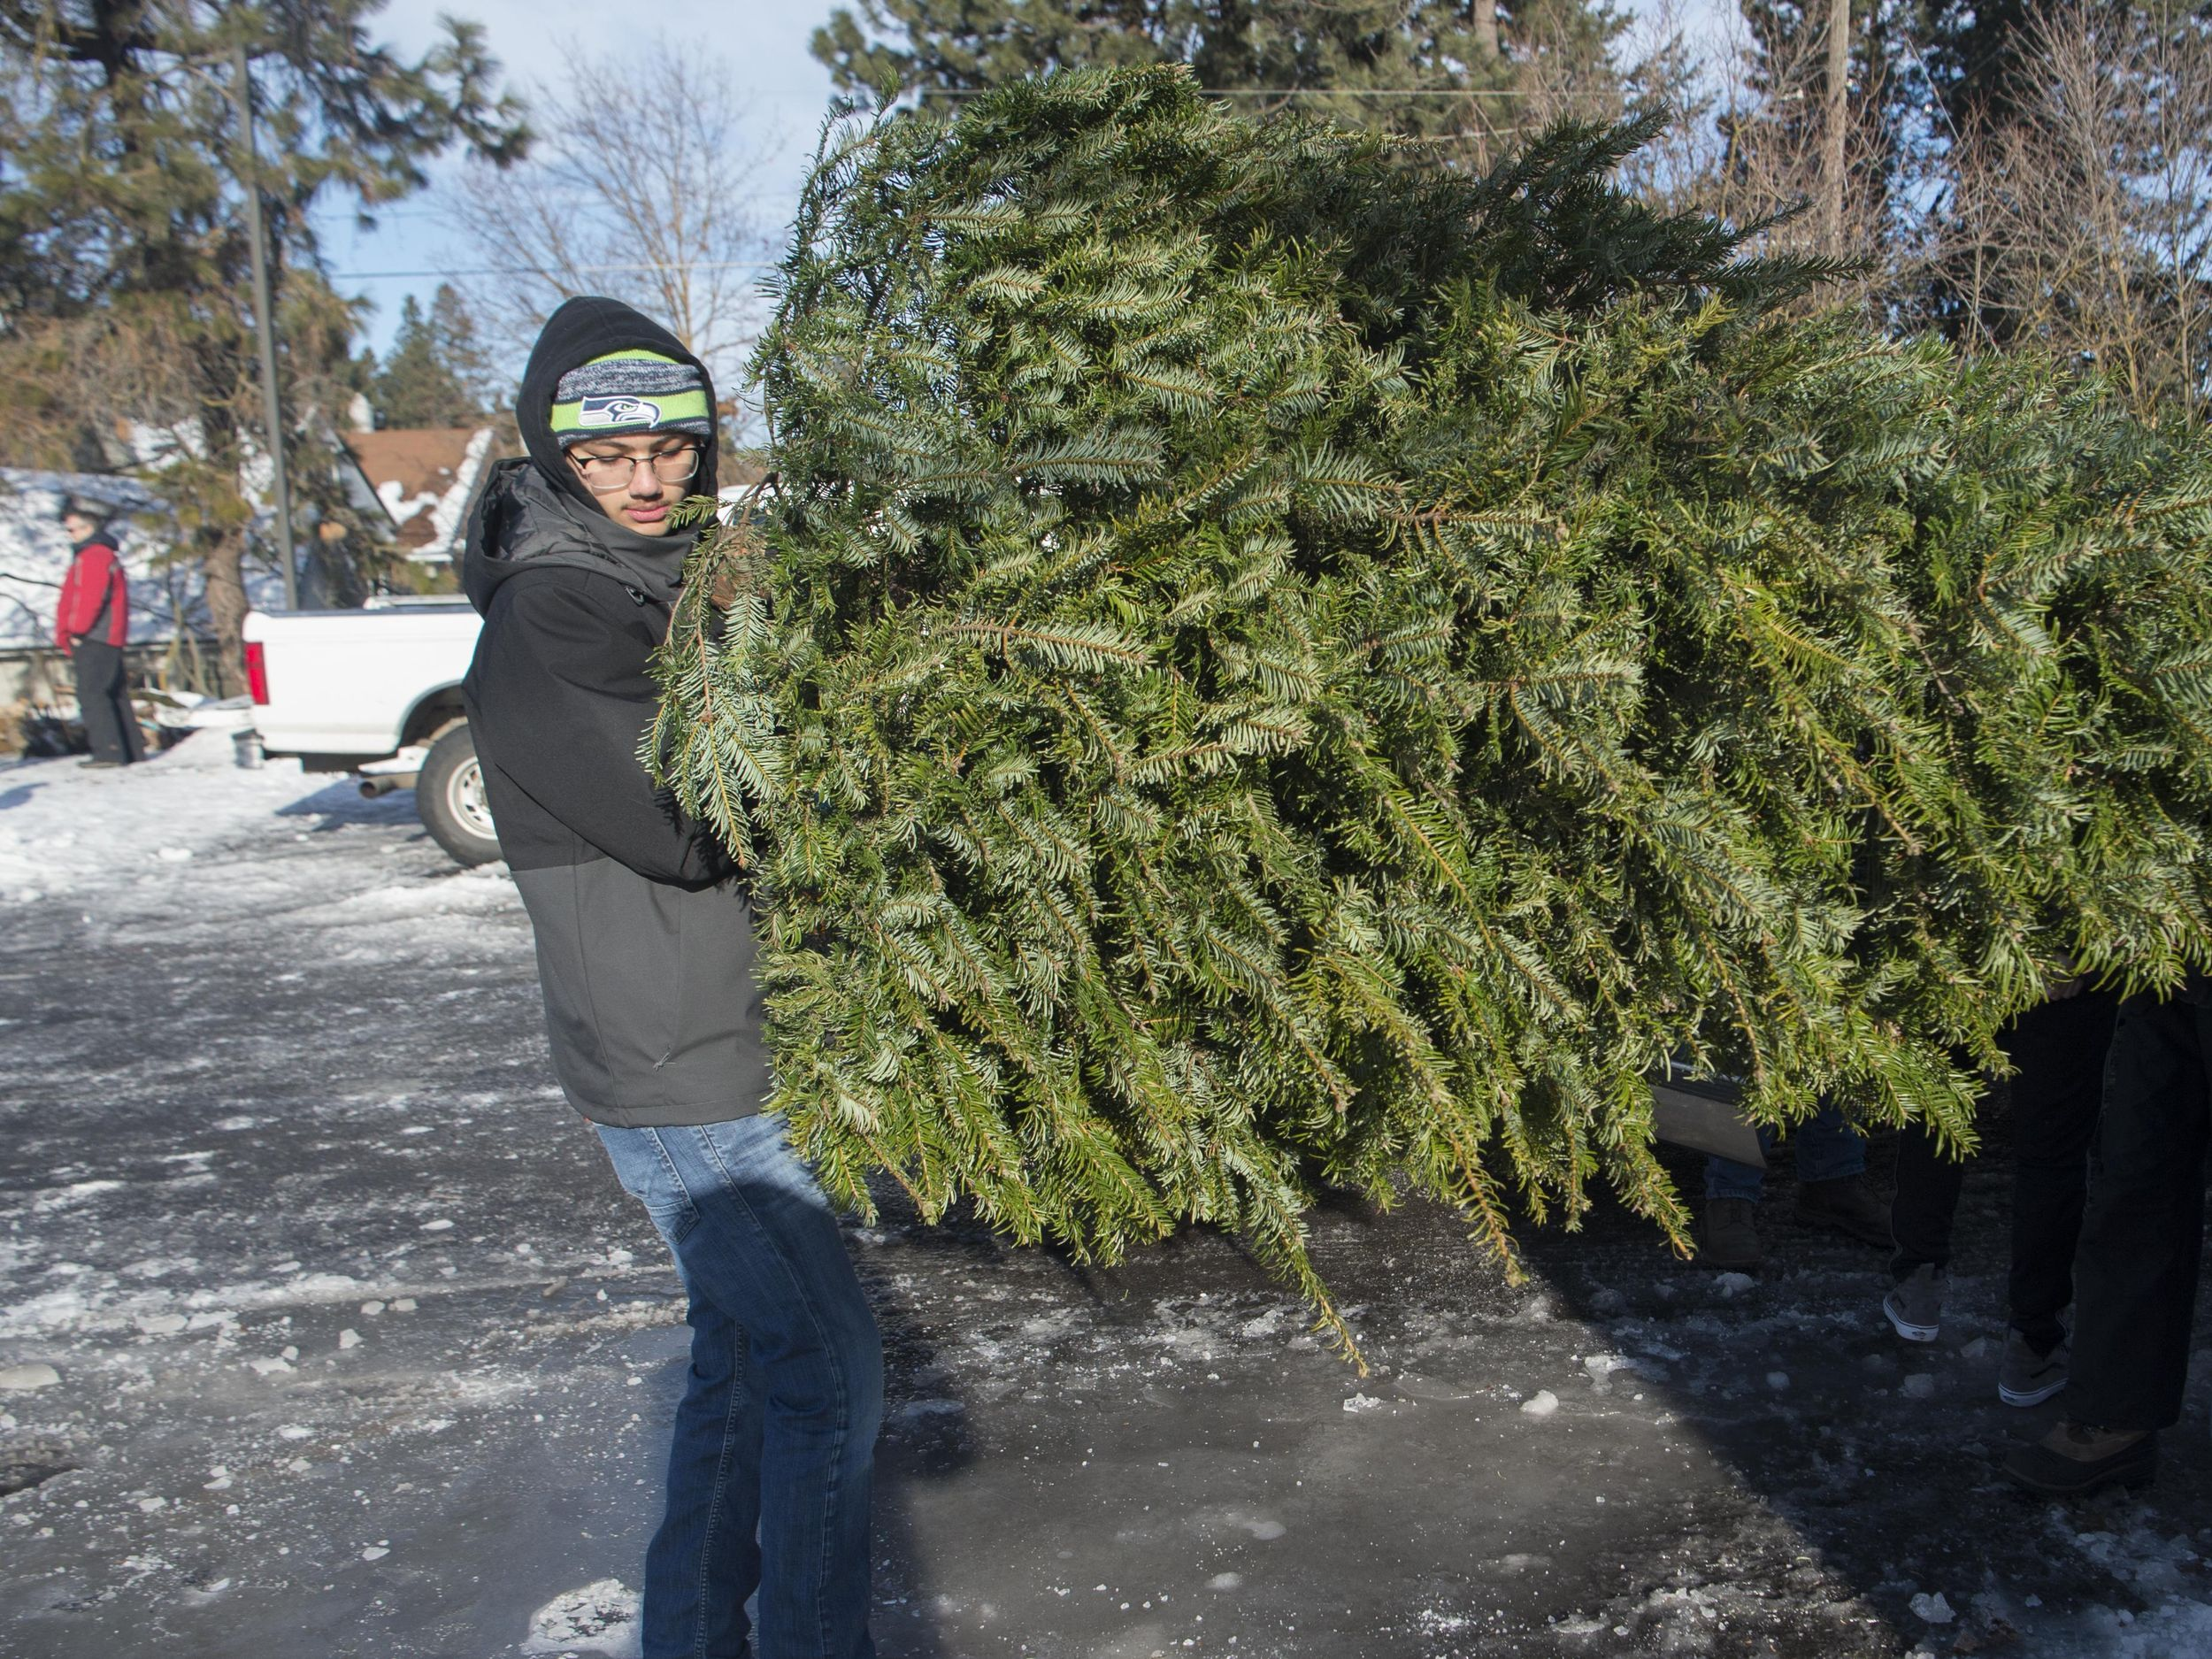 Spokane Solid Waste Christmas Trees 2020 Christmas is over. Here's how to get rid of your tree | The